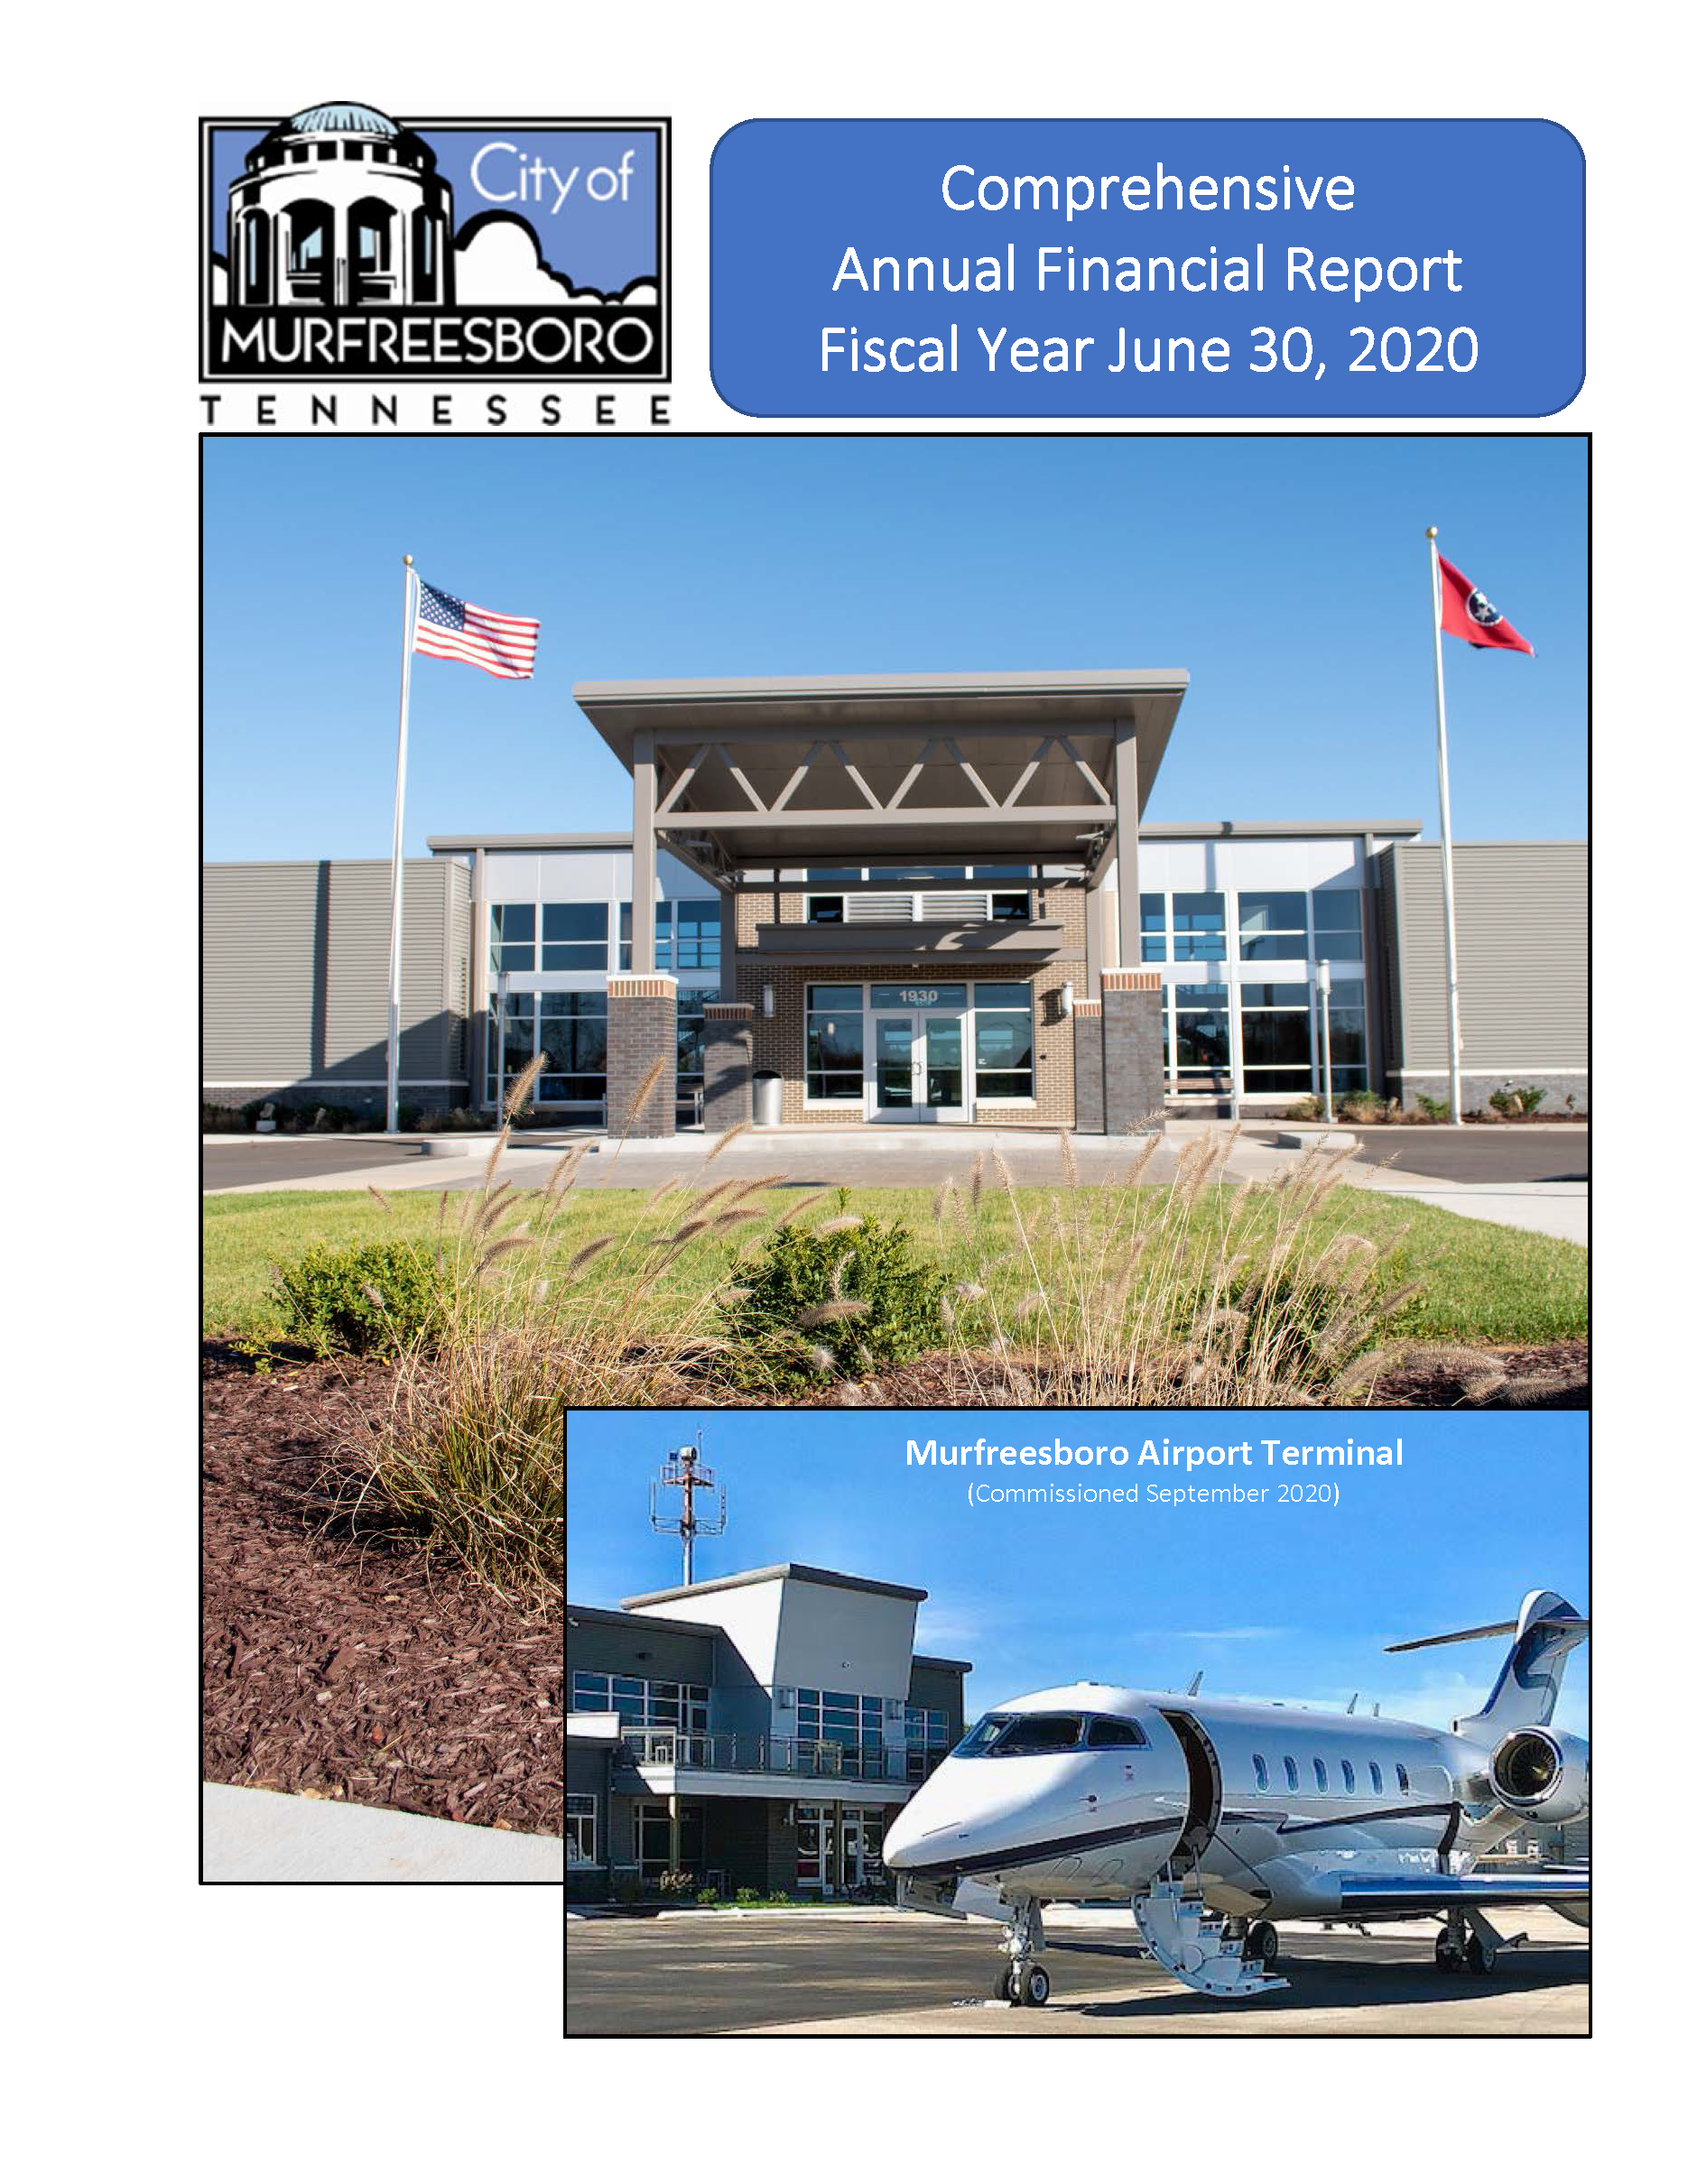 Comprehensive Annual Financial Report Fiscal Year June 30, 2020